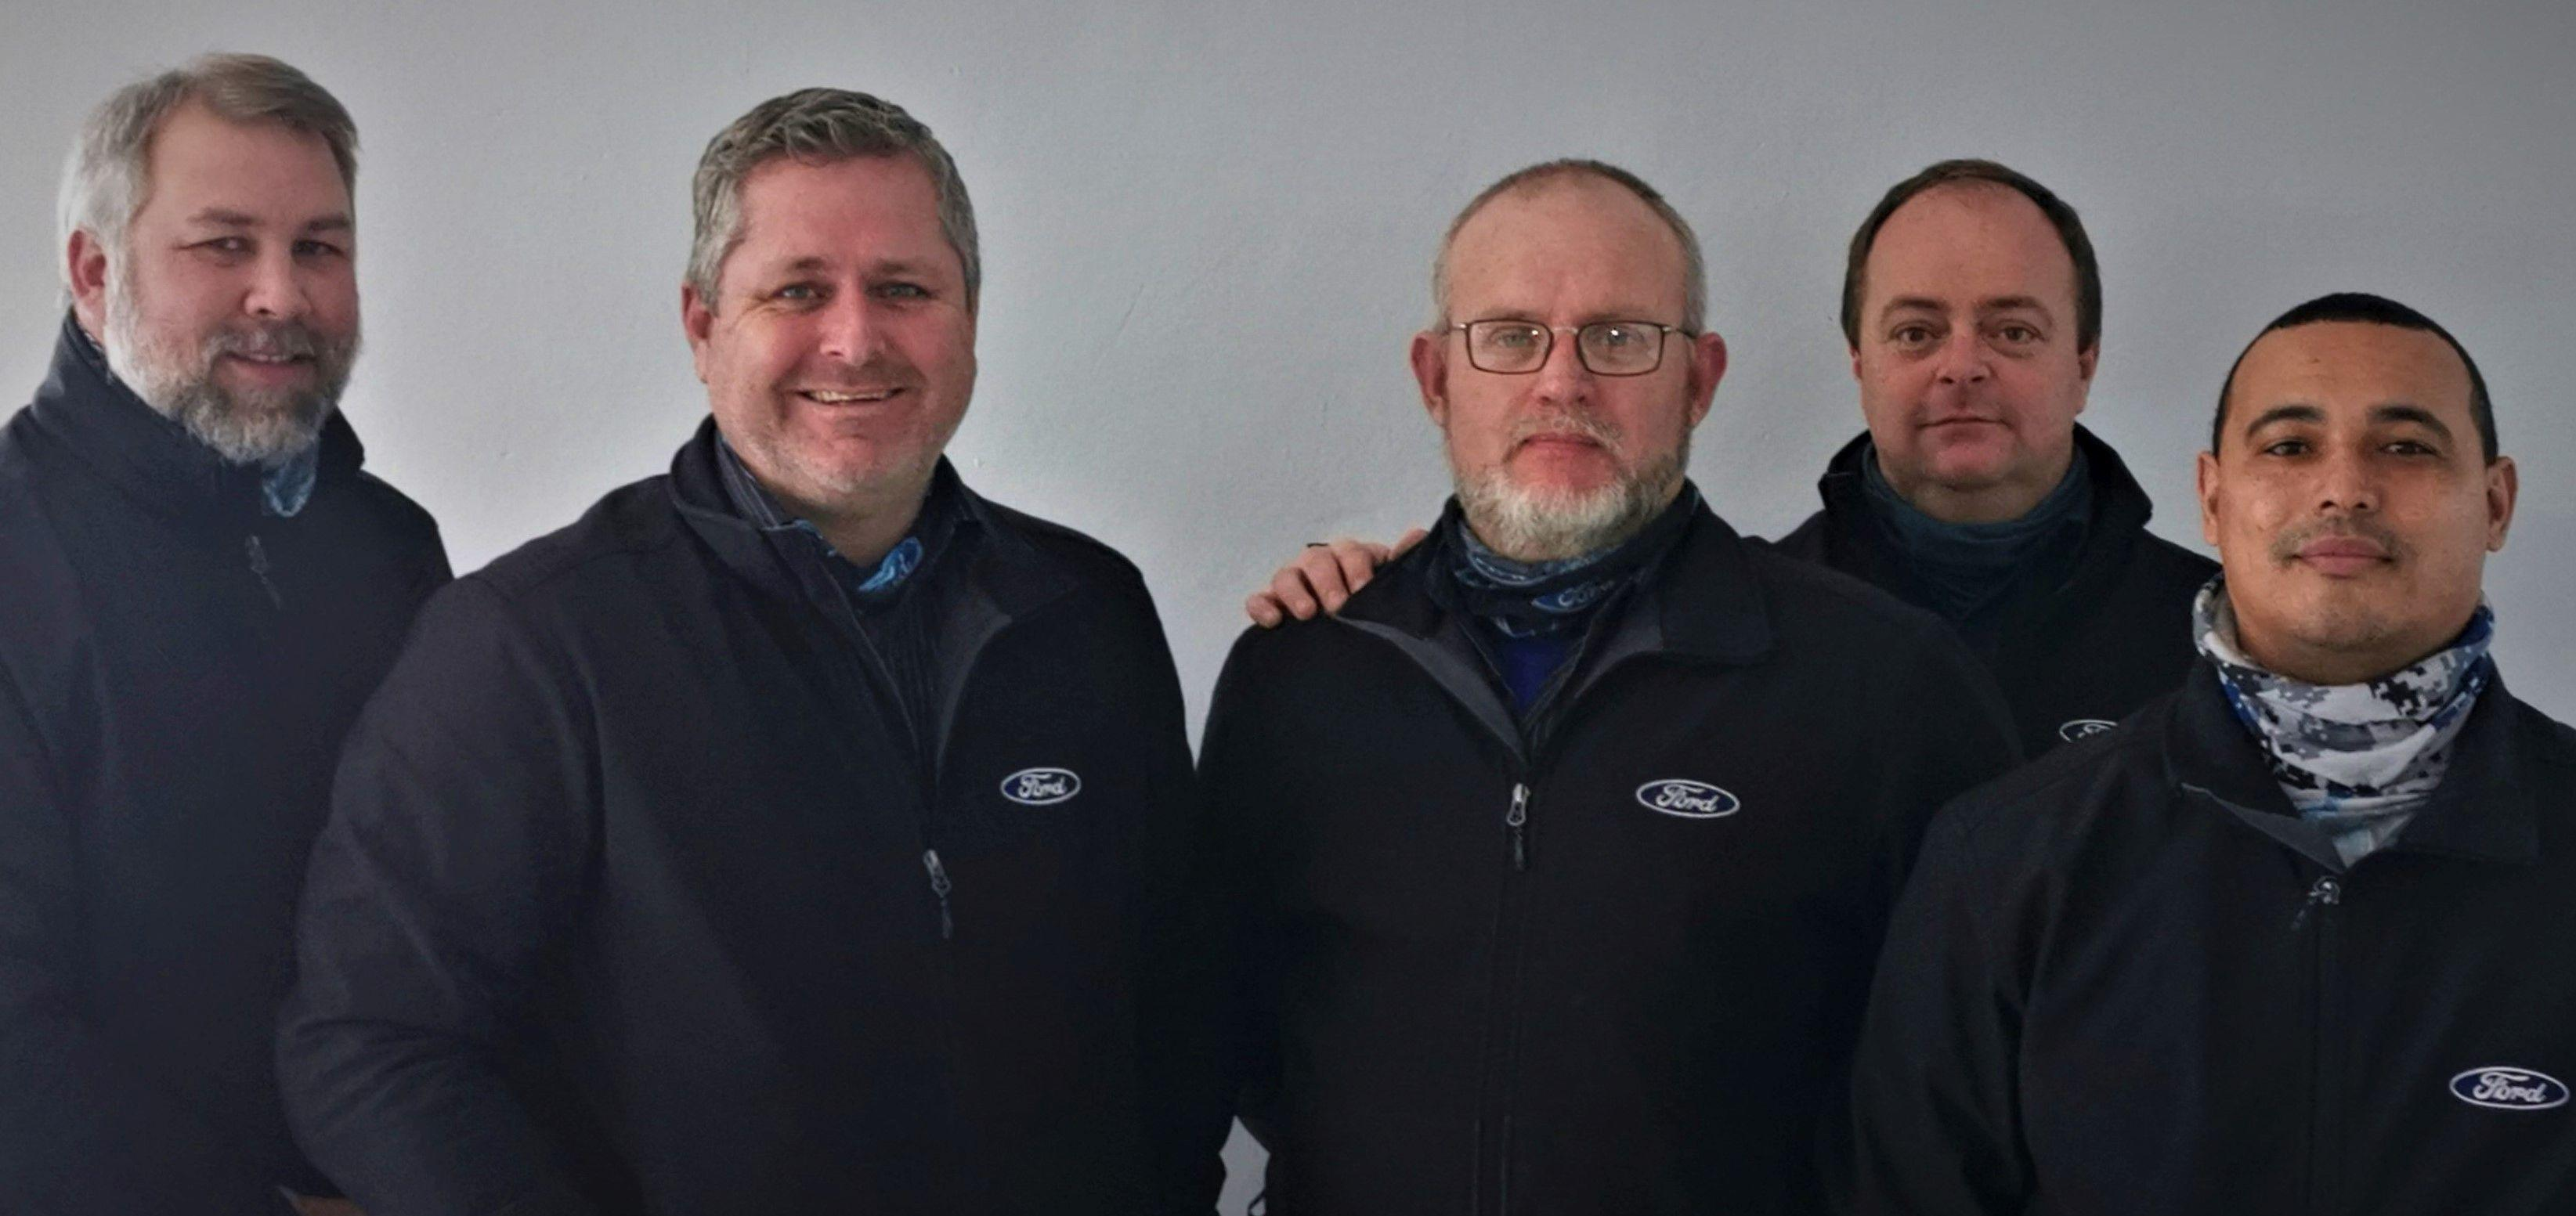 Rola Ford Caledon management team: From left is Wiehan Grobbelaar (FM), Marco Calitz (DP), Vernon Scheepers (Aftersales Manager), Lean de Wet (Sales Manager) and Paul Adonis (Driveway Manager).